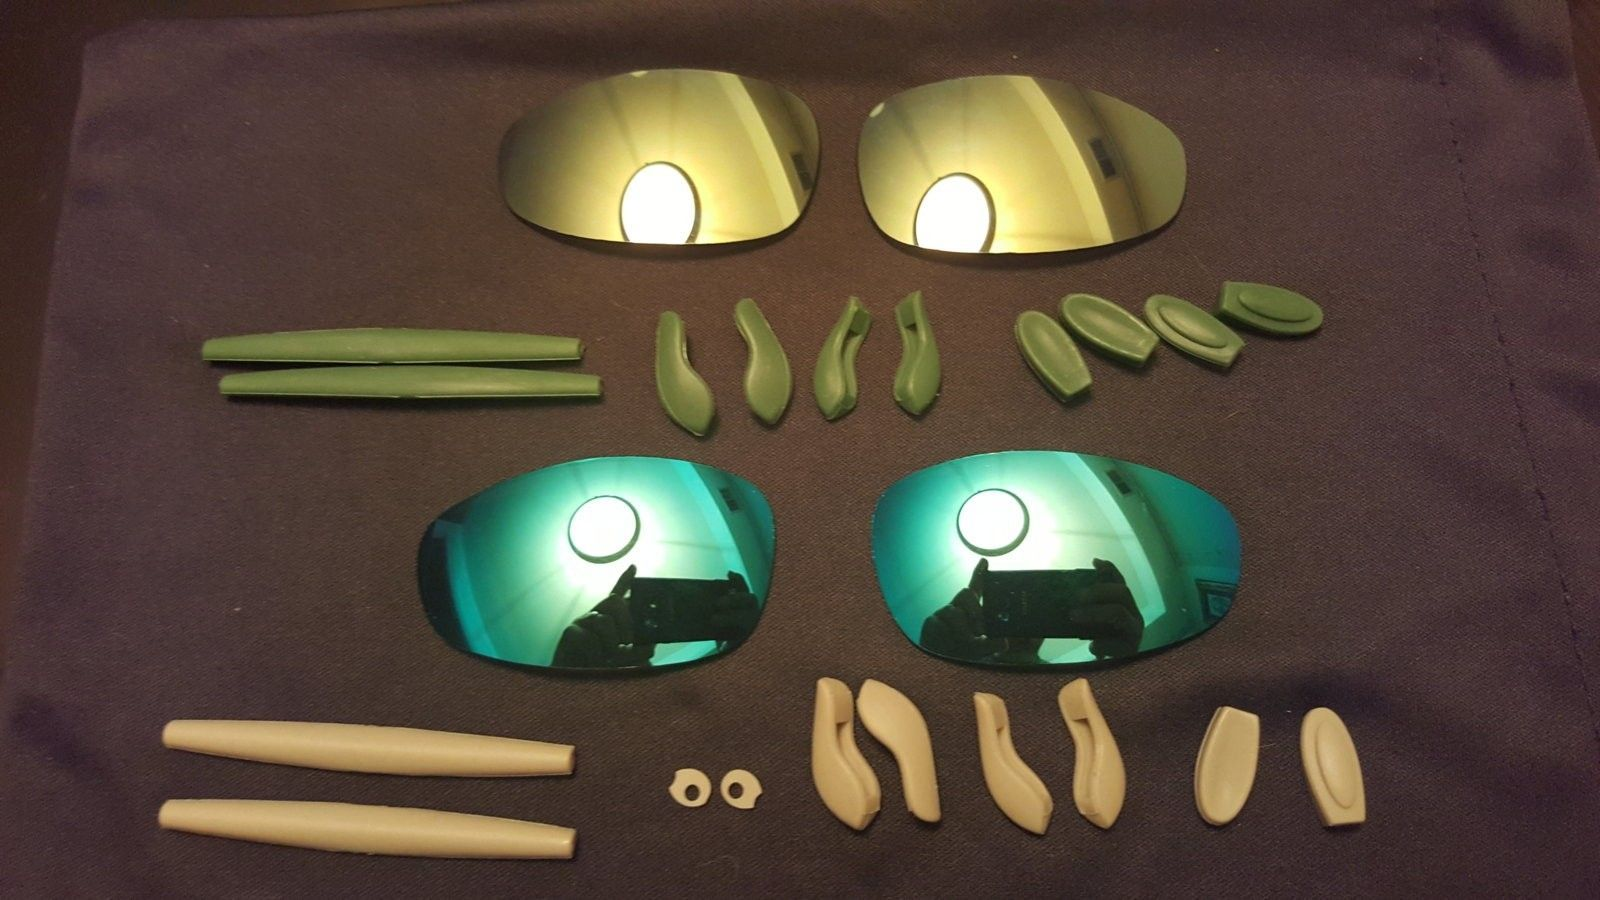 Juliet Hammer Stem Plasma/ g30, emerald, blue lenses and 2 extra rubber kits - 1455625066326-589226252.jpg